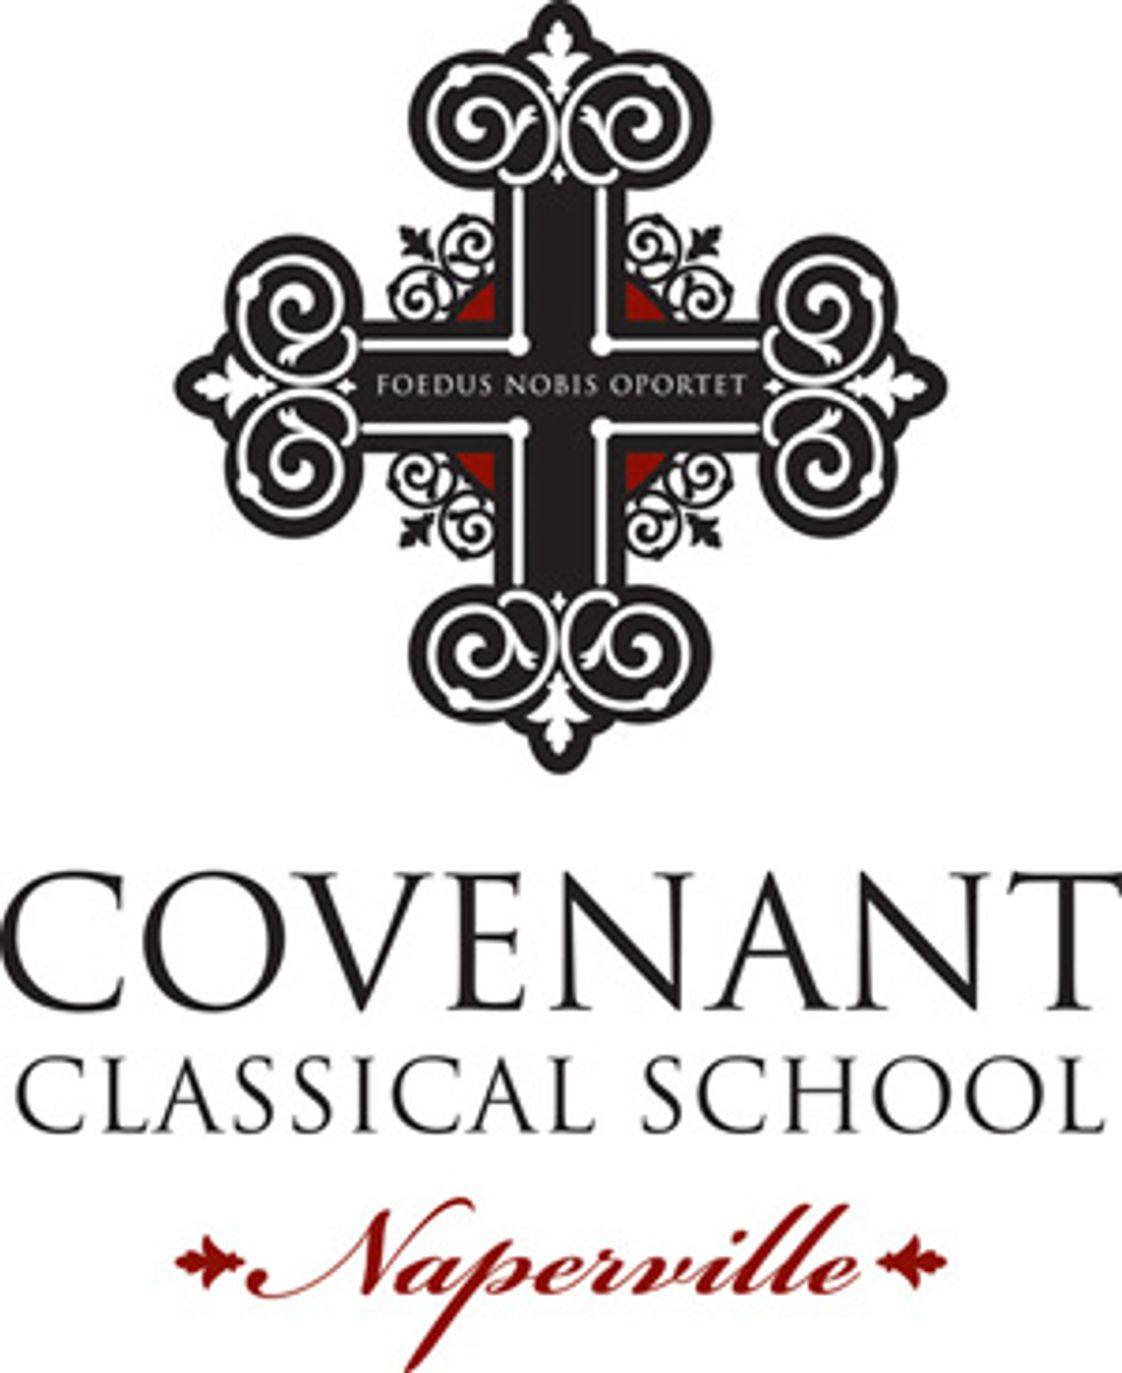 Covenant Classical School Photo - Foedus Nobis Oportet - The Covenant Binds Us